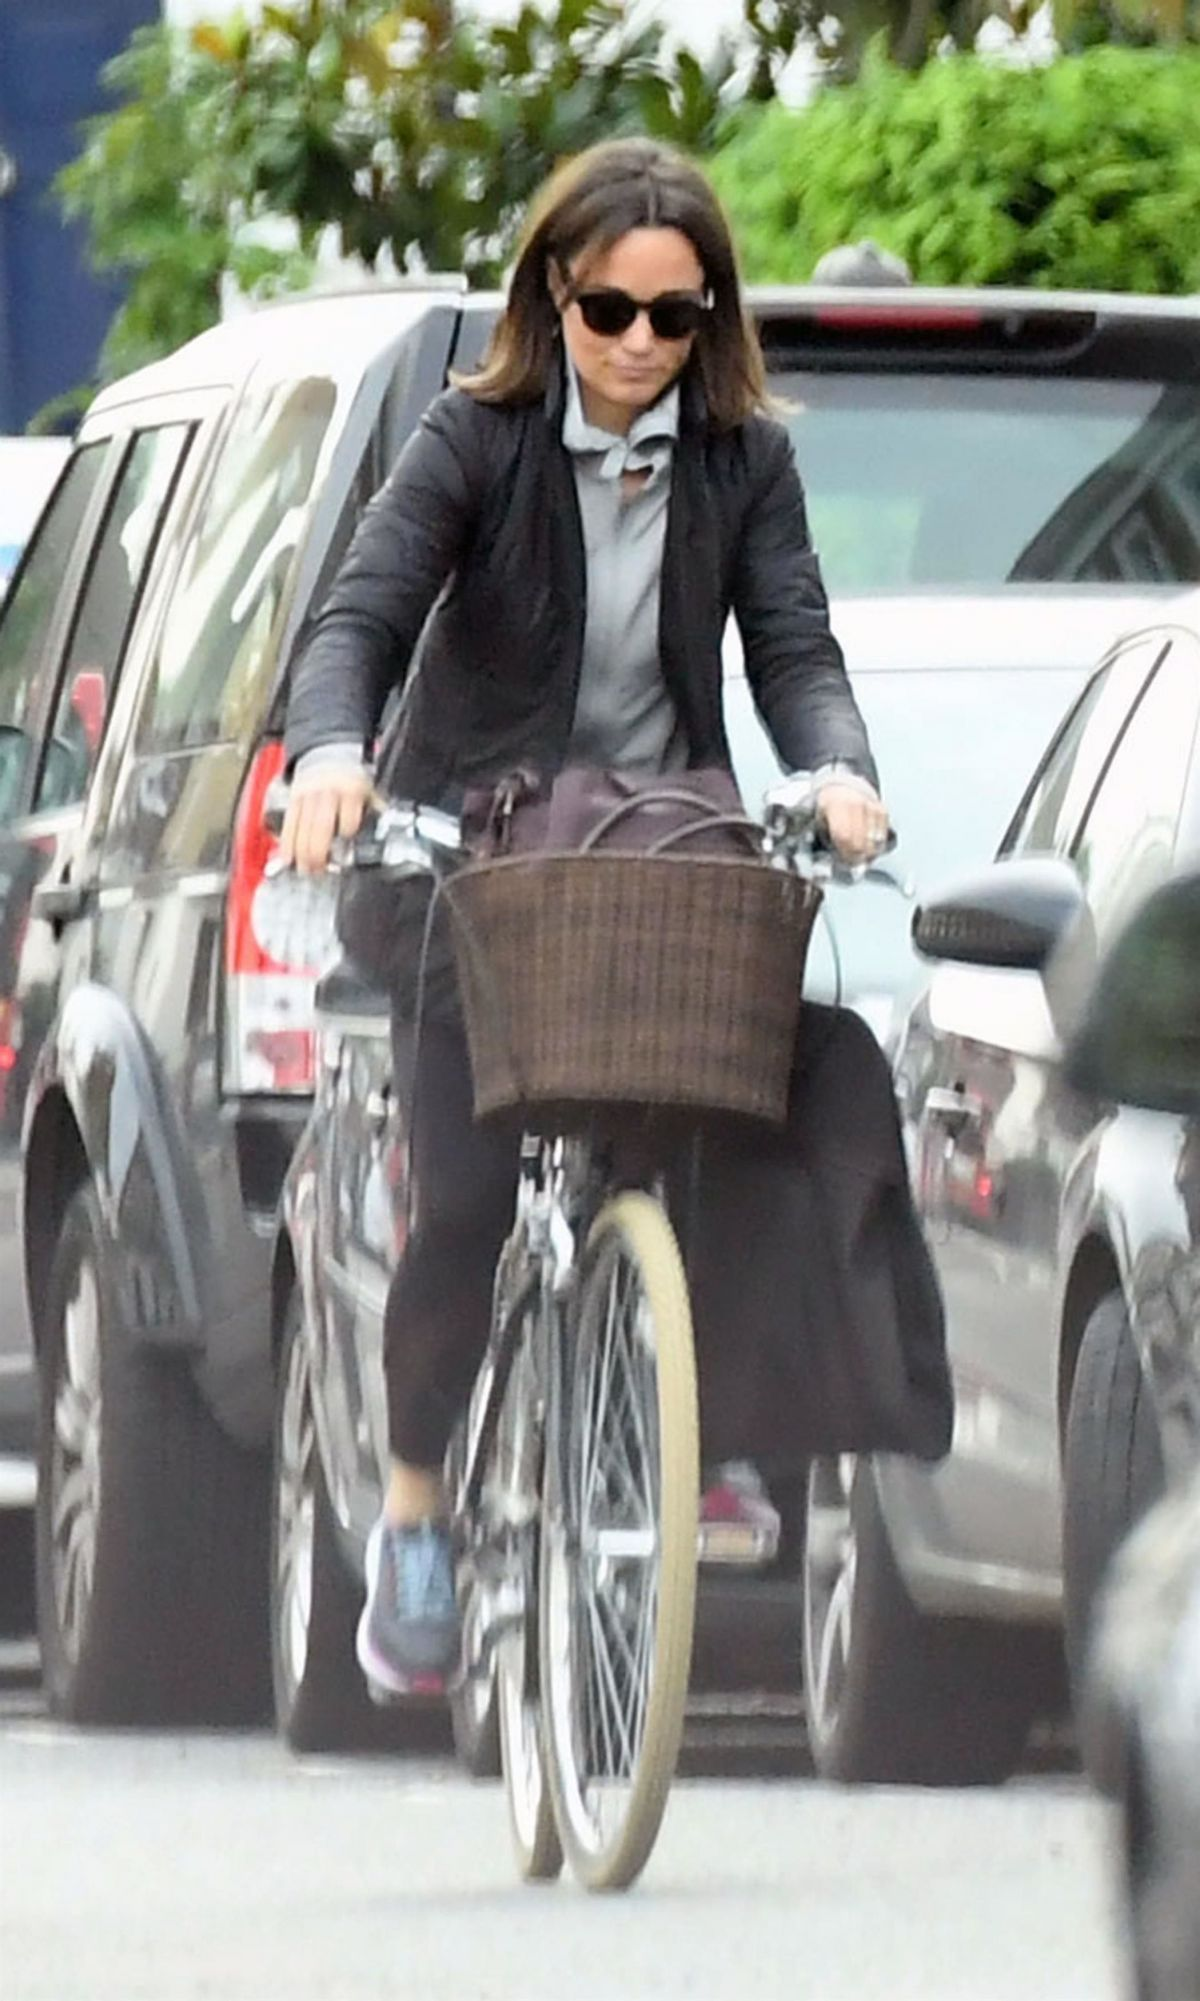 pippa-middleton-out-riding-a-bicycle-in-london-11-09-2017-13.jpg